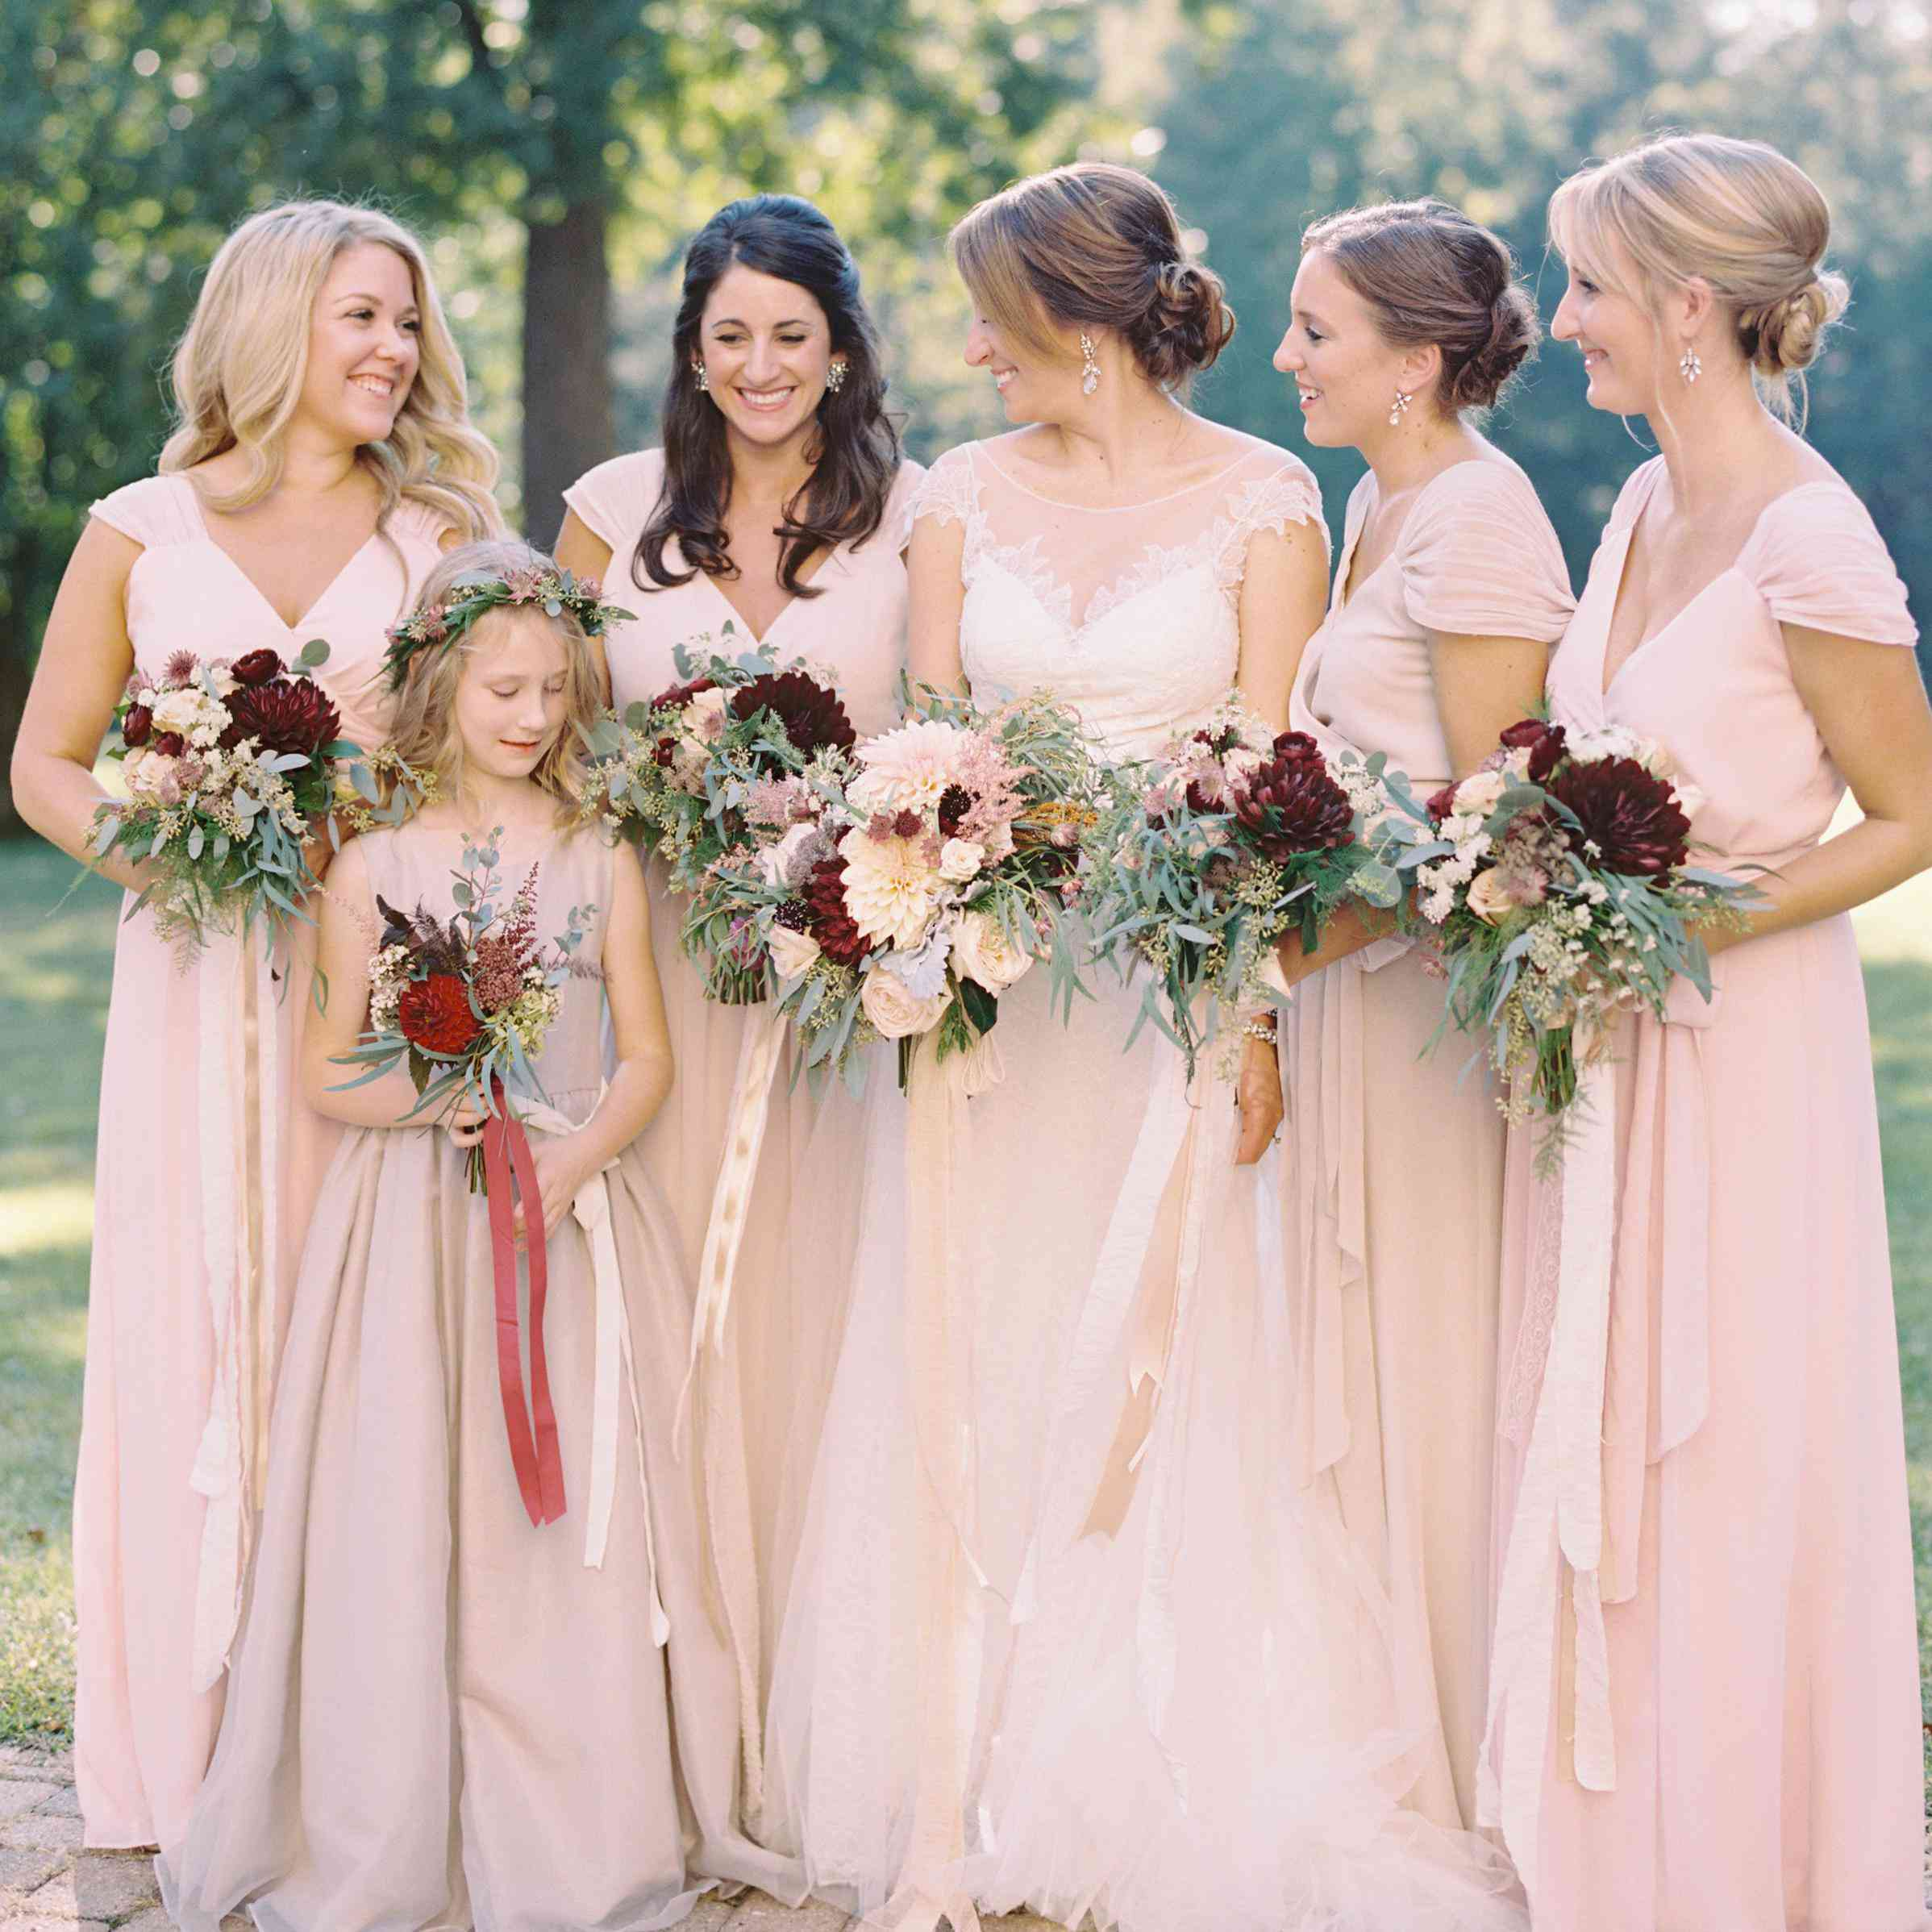 Wedding Colors: 7 Things You Have To Consider When Choosing Your Wedding